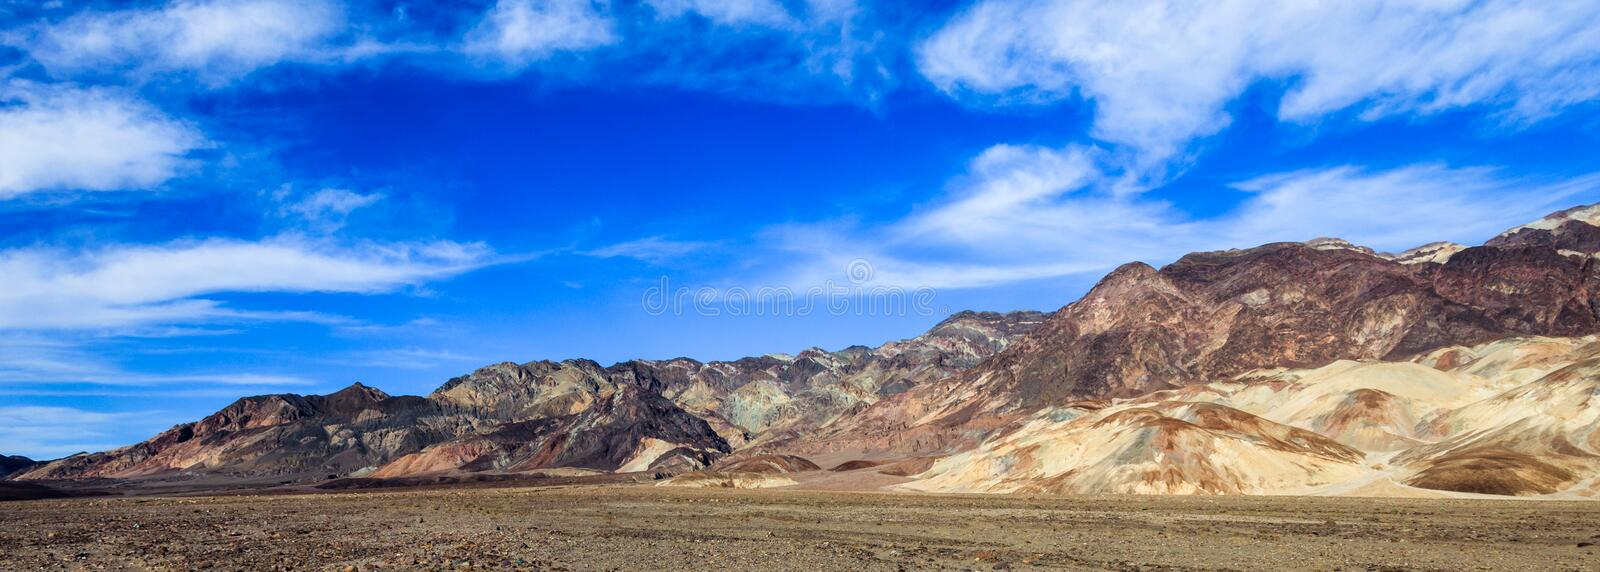 Death Valley Mountains royalty free stock images